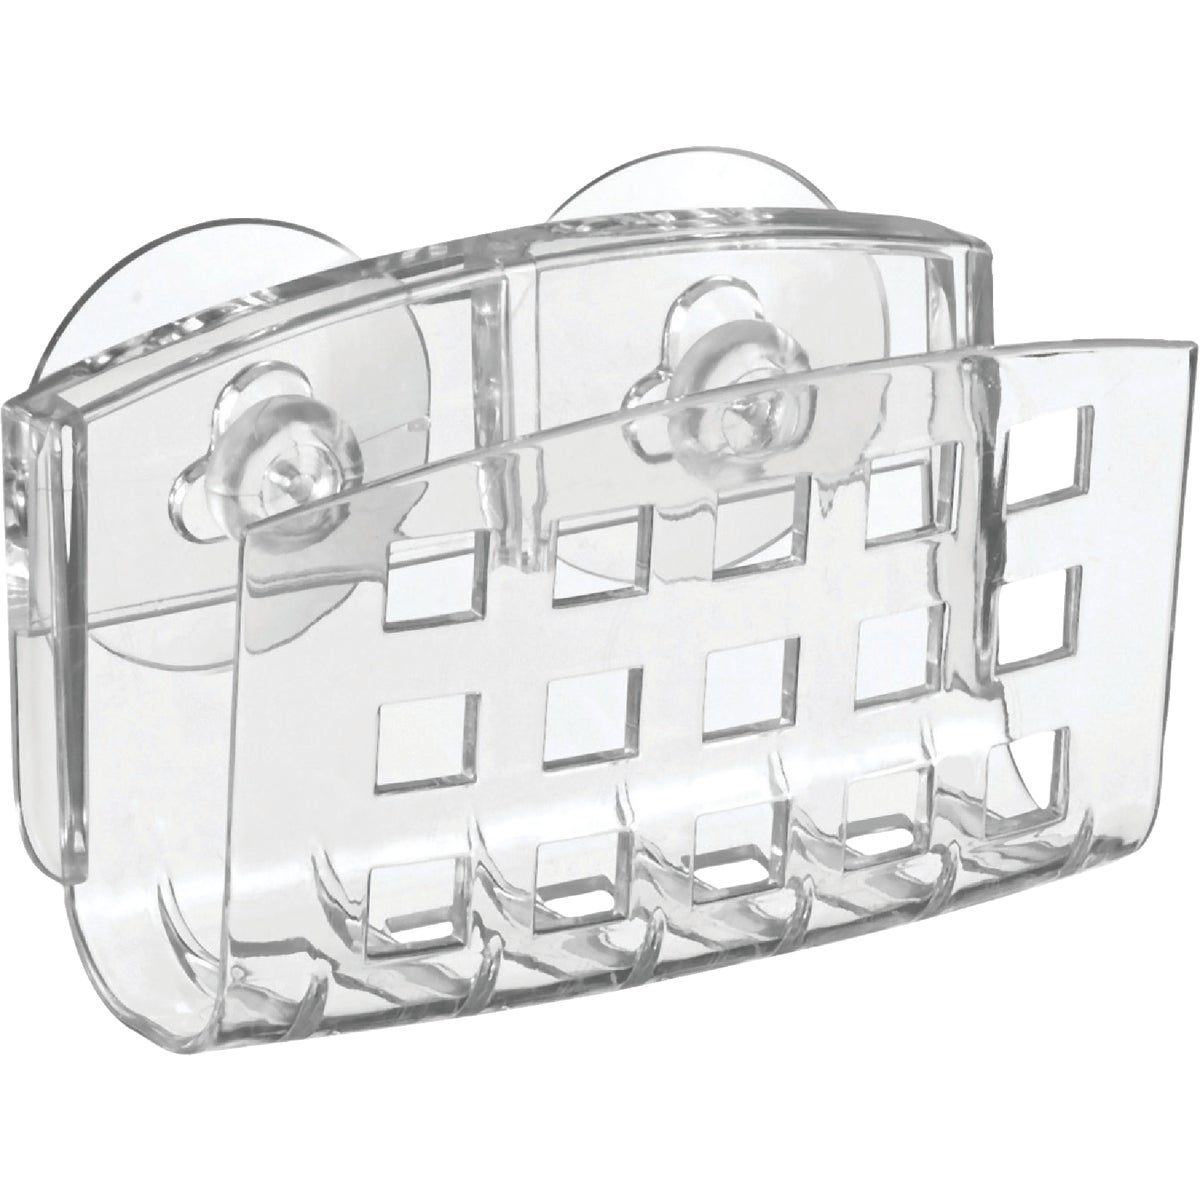 CLEAR SPONGE HOLDER - 25300 by Interdesign Inc